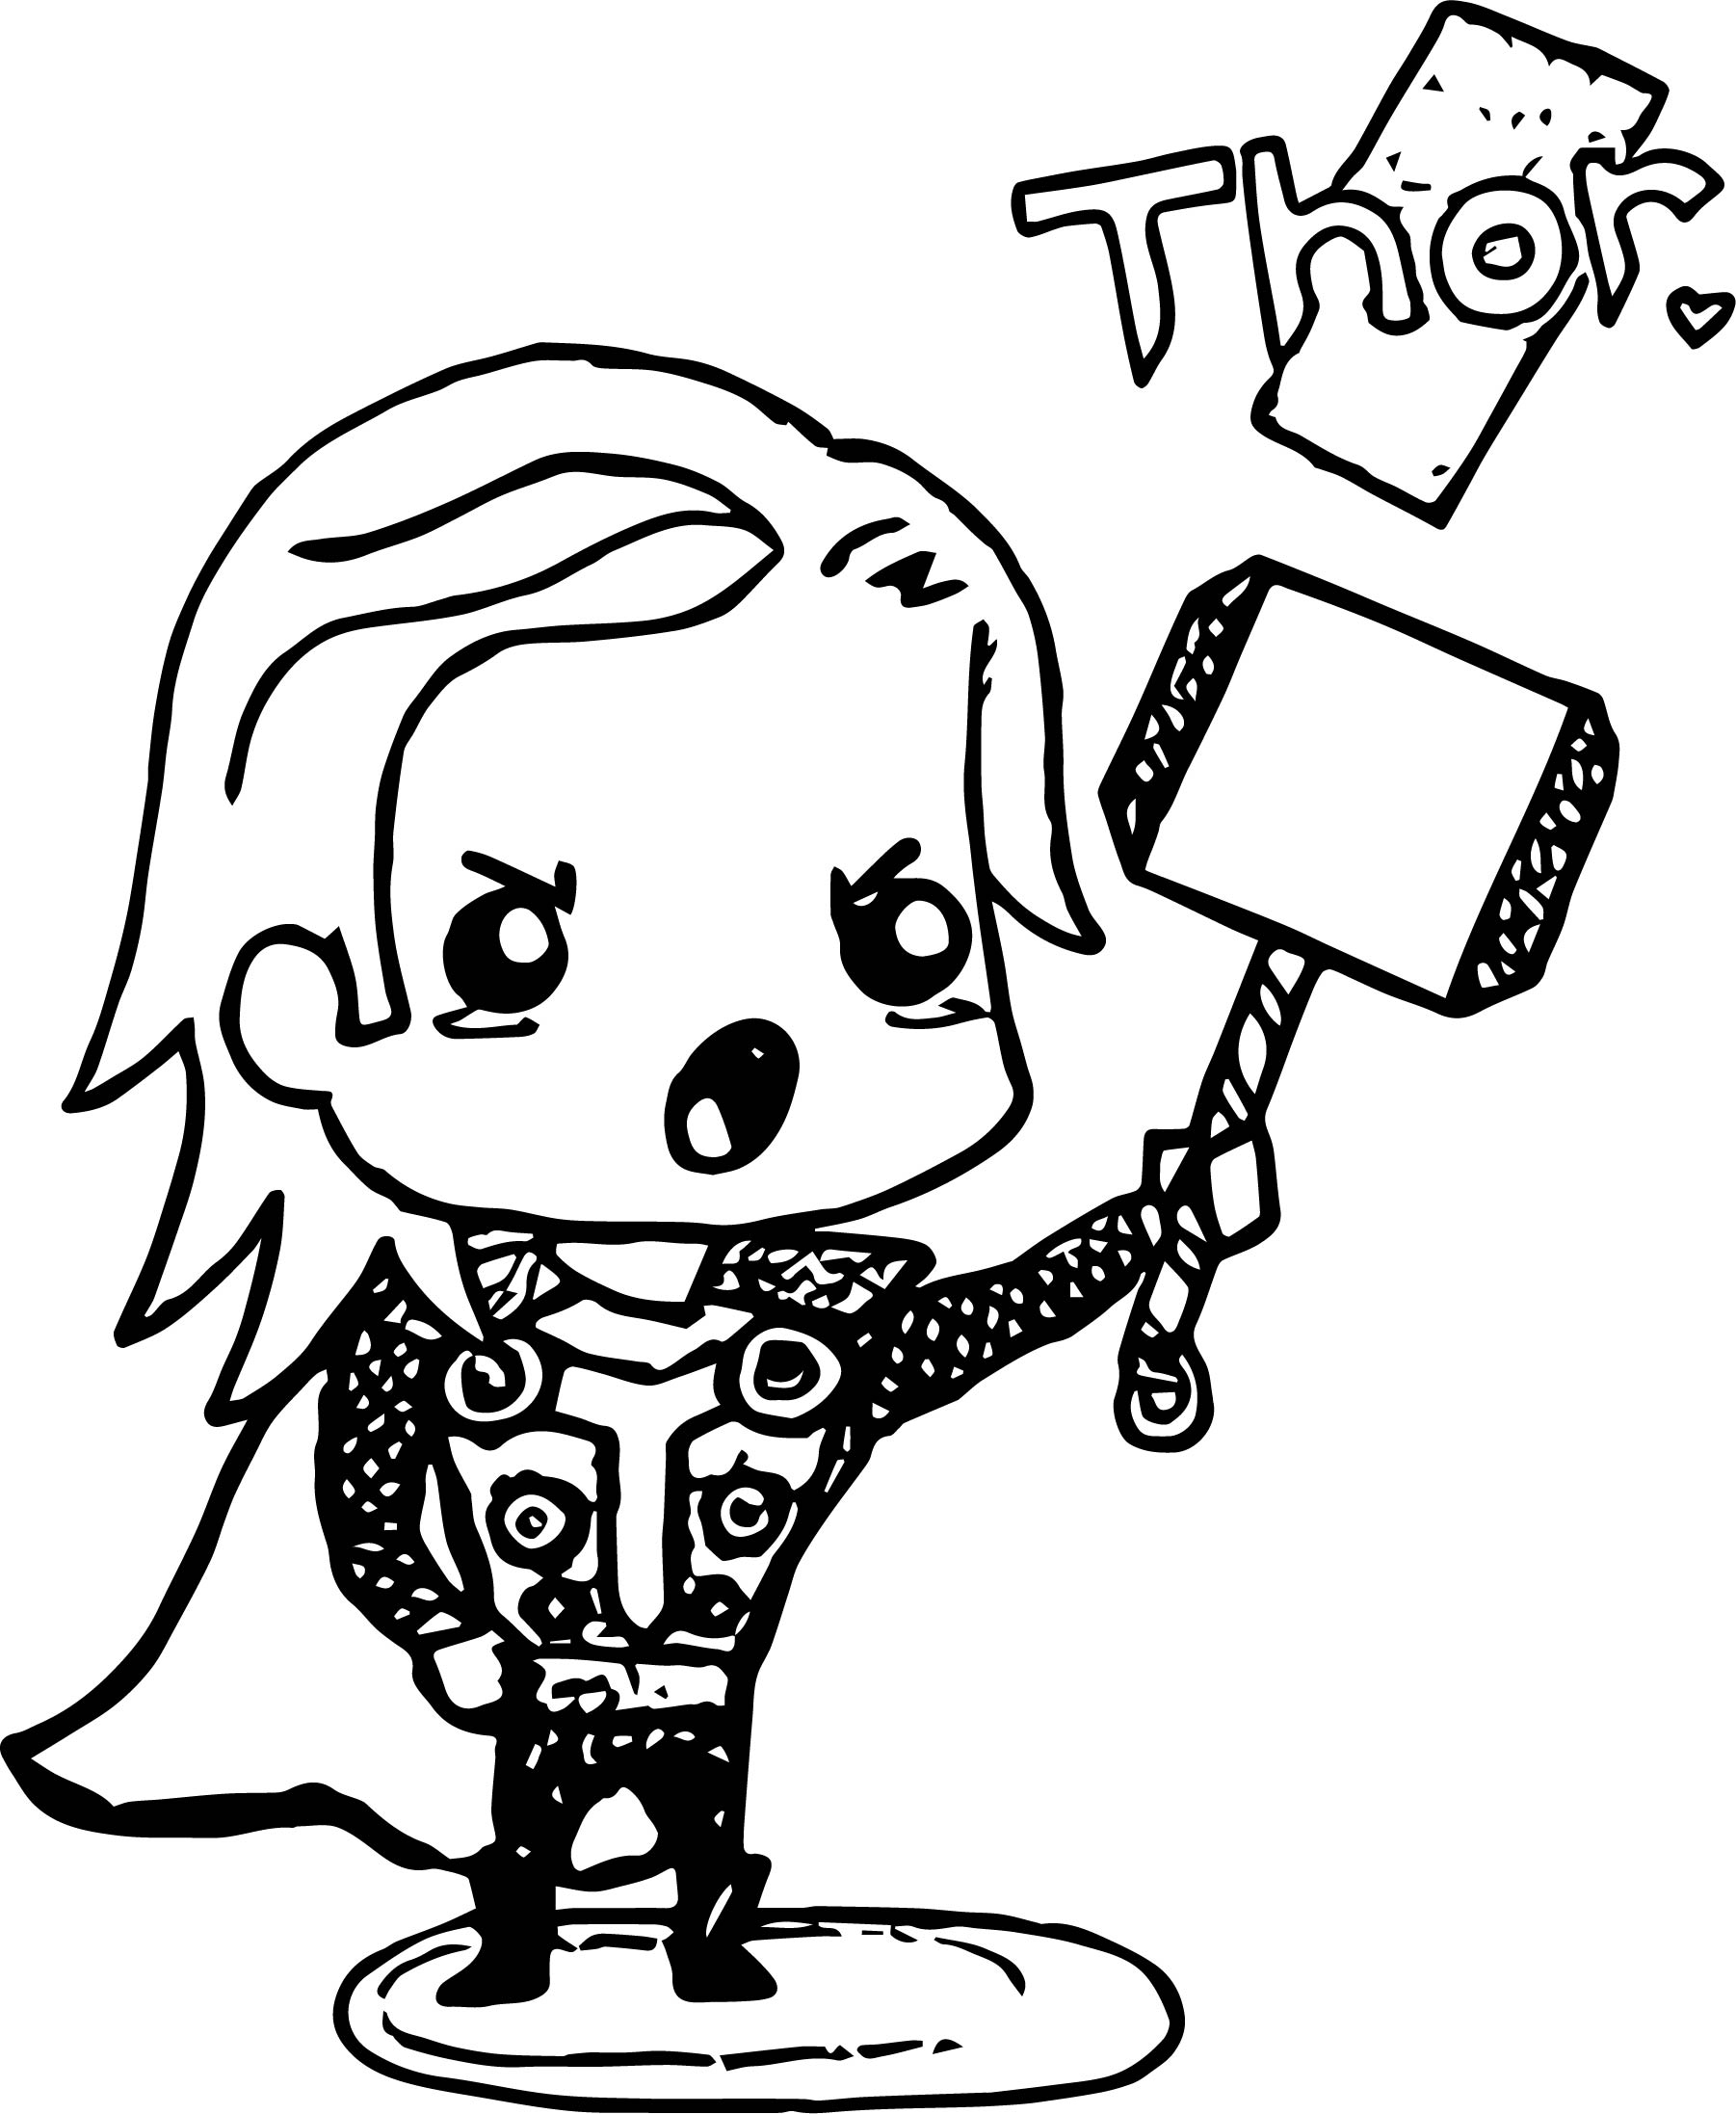 cute avengers coloring pages png iron man capitán américa capitán marvel viuda negra coloring avengers pages cute